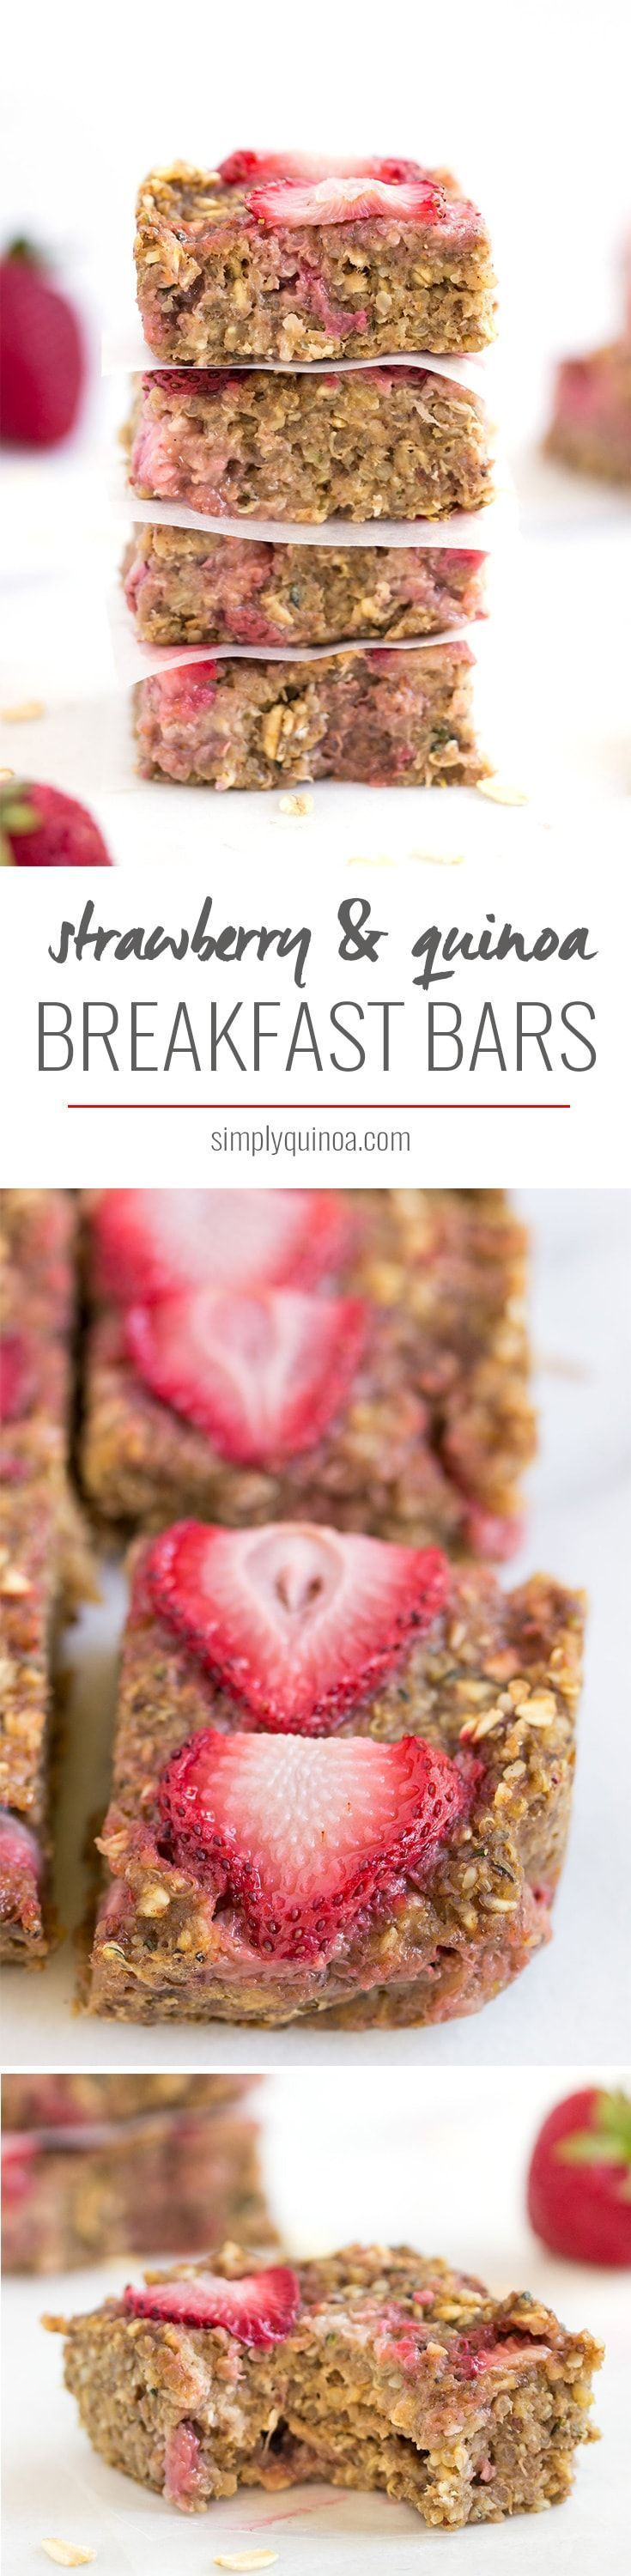 How good do these quinoa breakfast bars look? Love that they're FLOURLESS and healthy -- naturally gluten-free + vegan too!